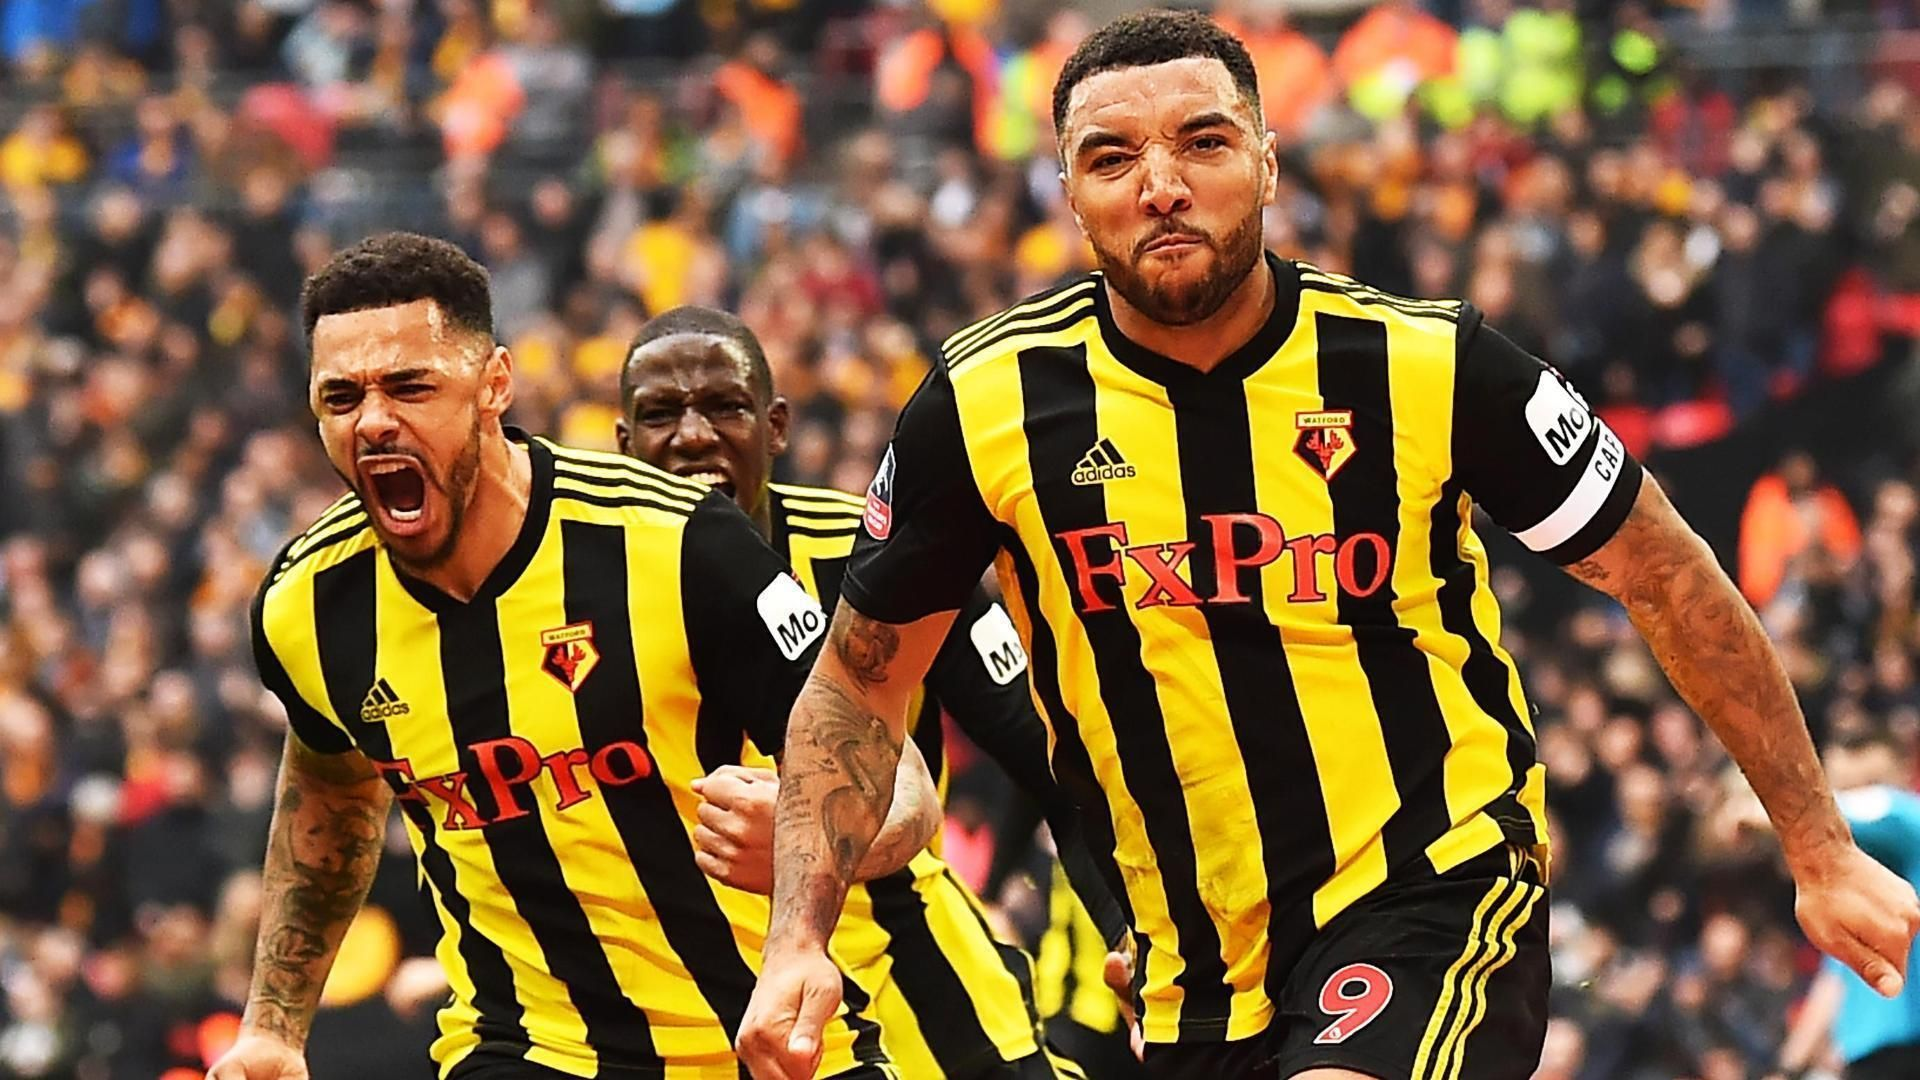 Troy Deeney's long journey from prison to the FA Cup final with Watford 3